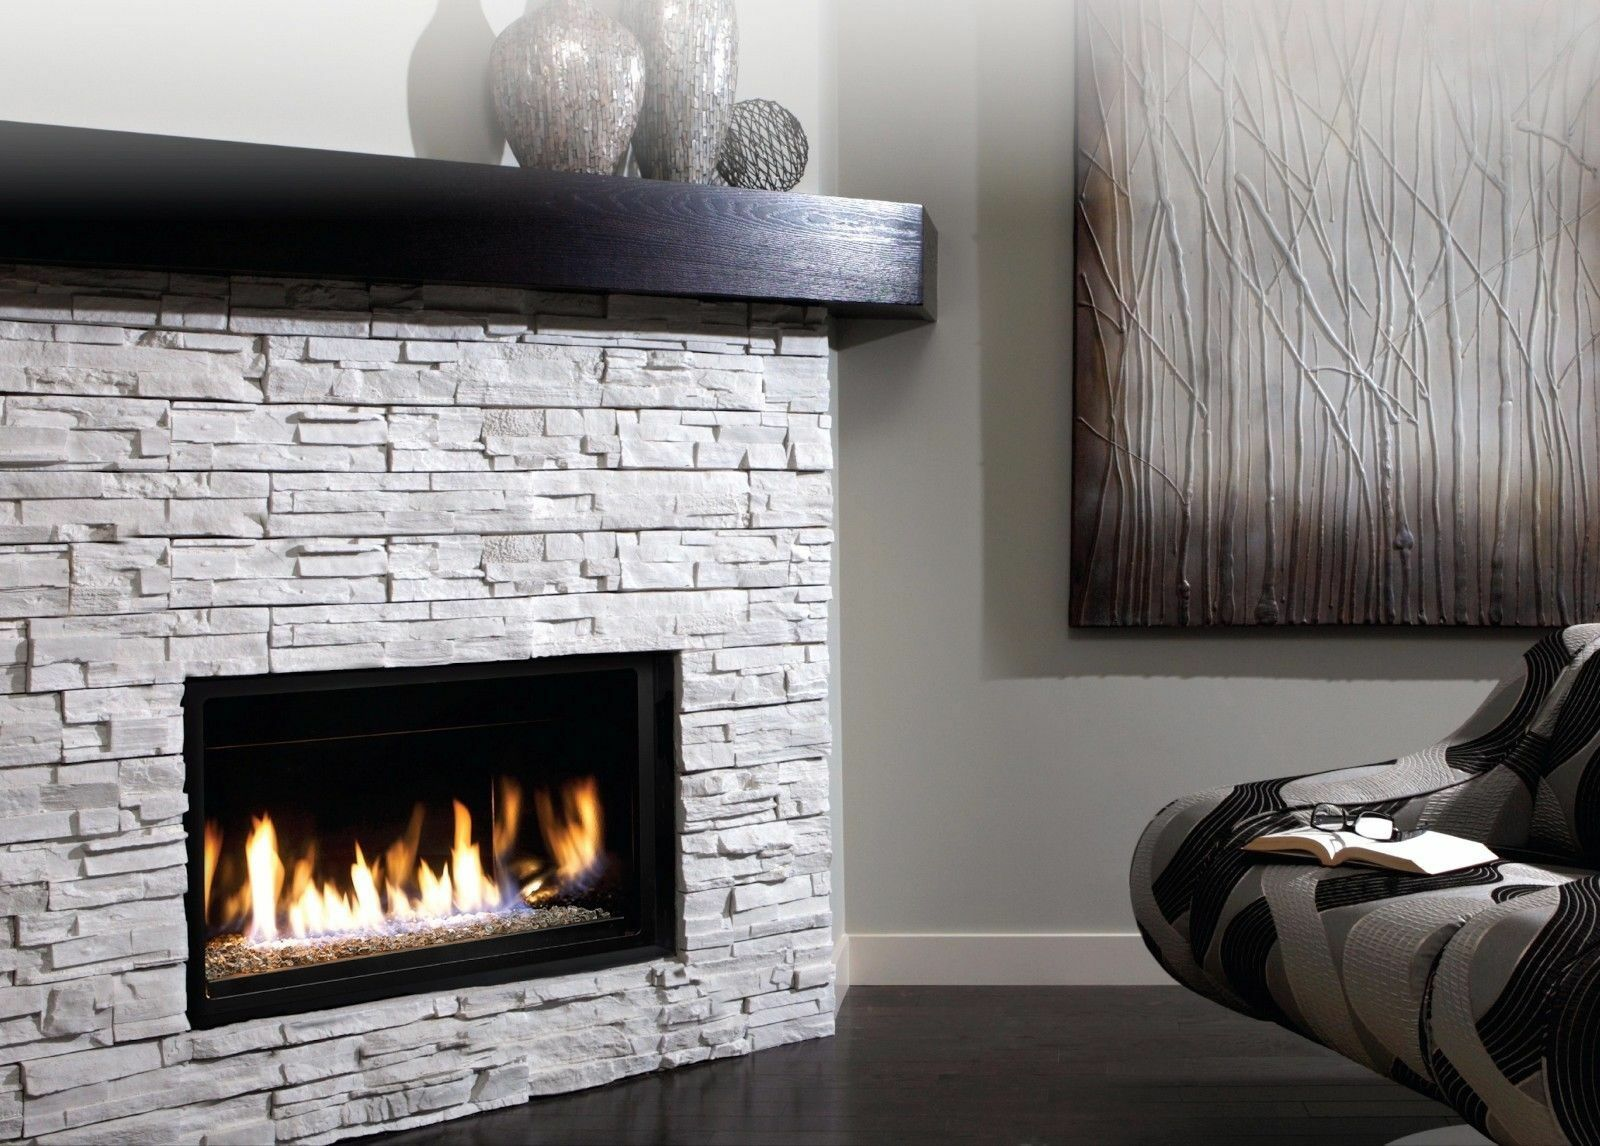 canpages fireplace mp pic on robinet rd page m by photos ypapi windsor inc kingsman mario lg fireplaces